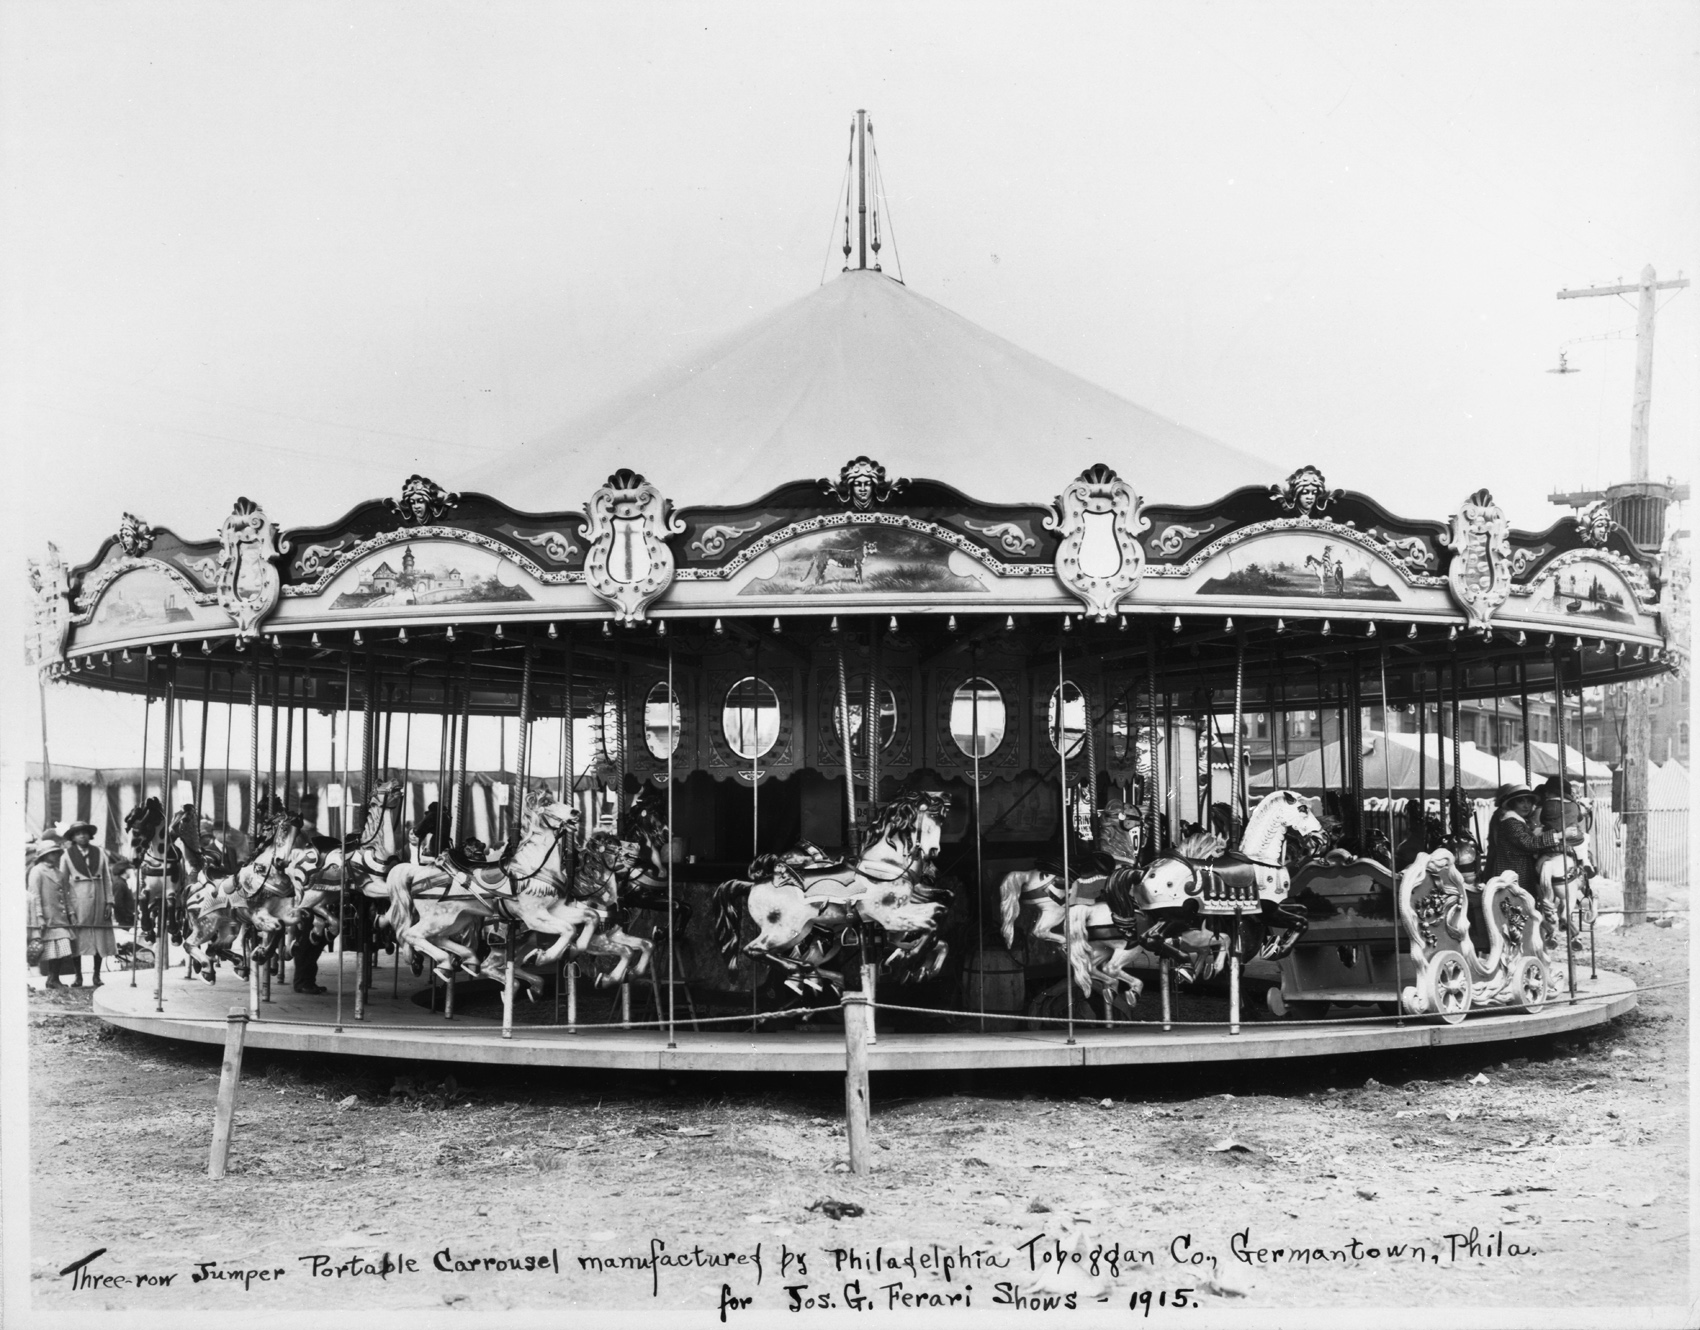 Philadelphia-Toboggan-Co-1915-PTC-No-34-carousel-auction